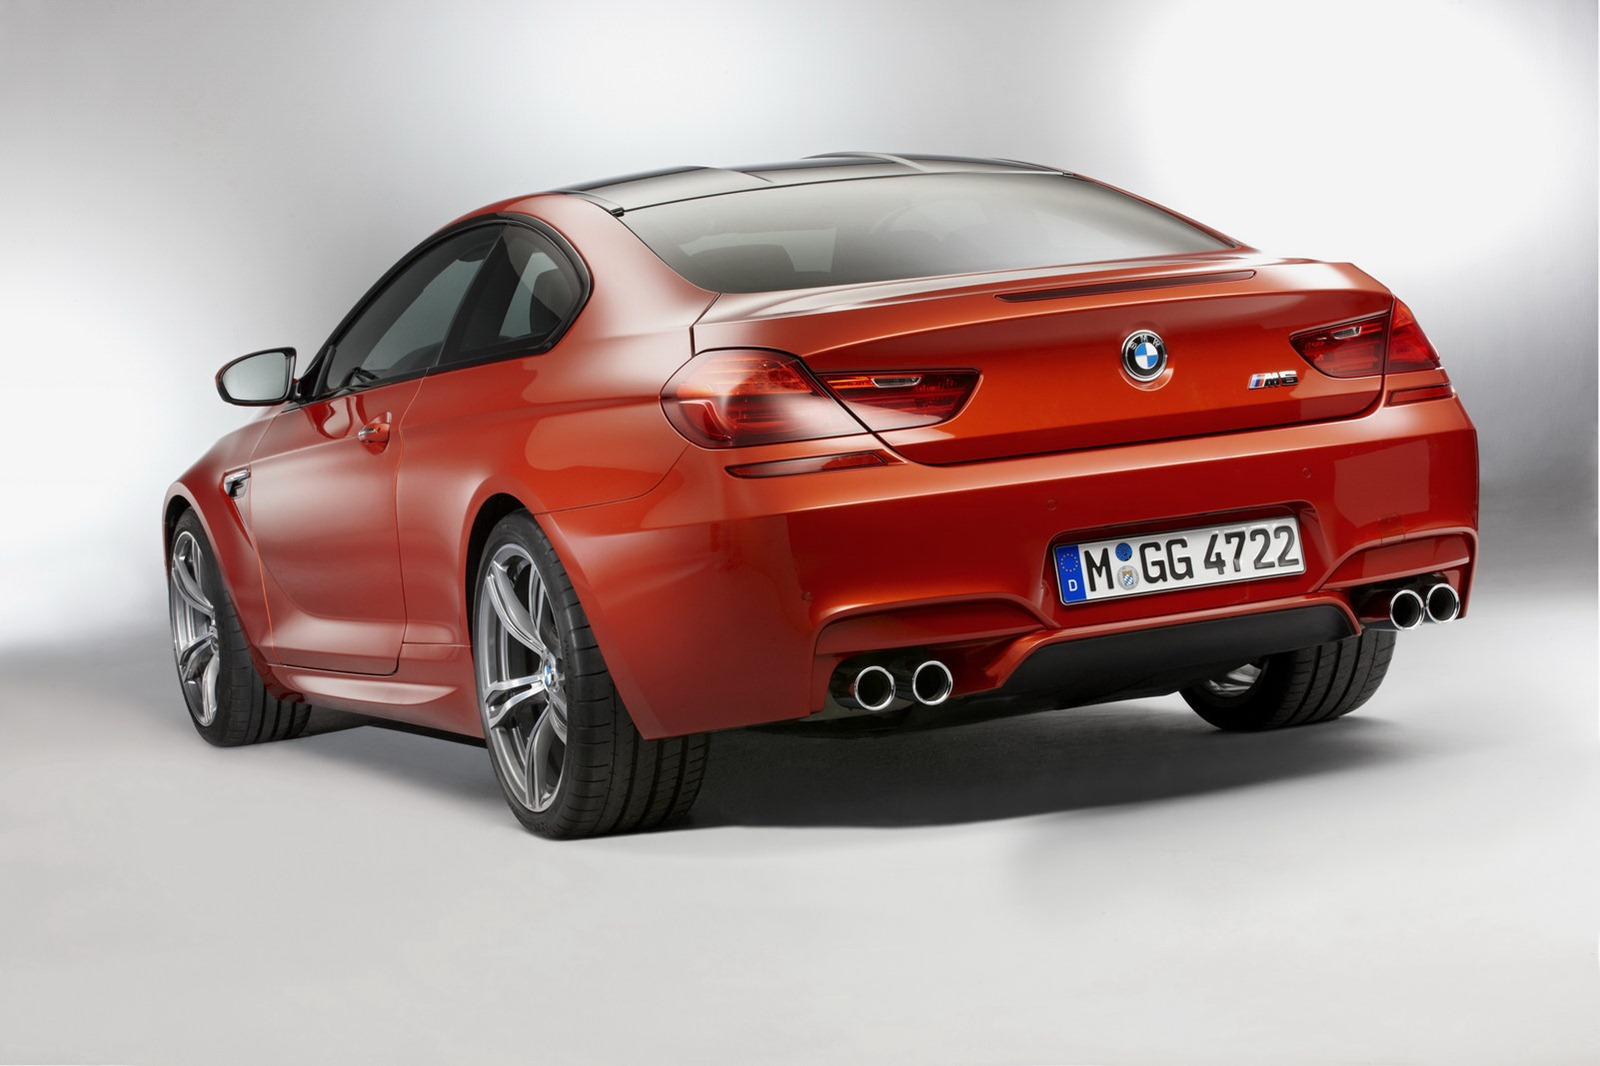 2013 BMW M6 Coupe and Convertible 3 BMW to Launch 2013 M6 Coupe and Convertible with New Features